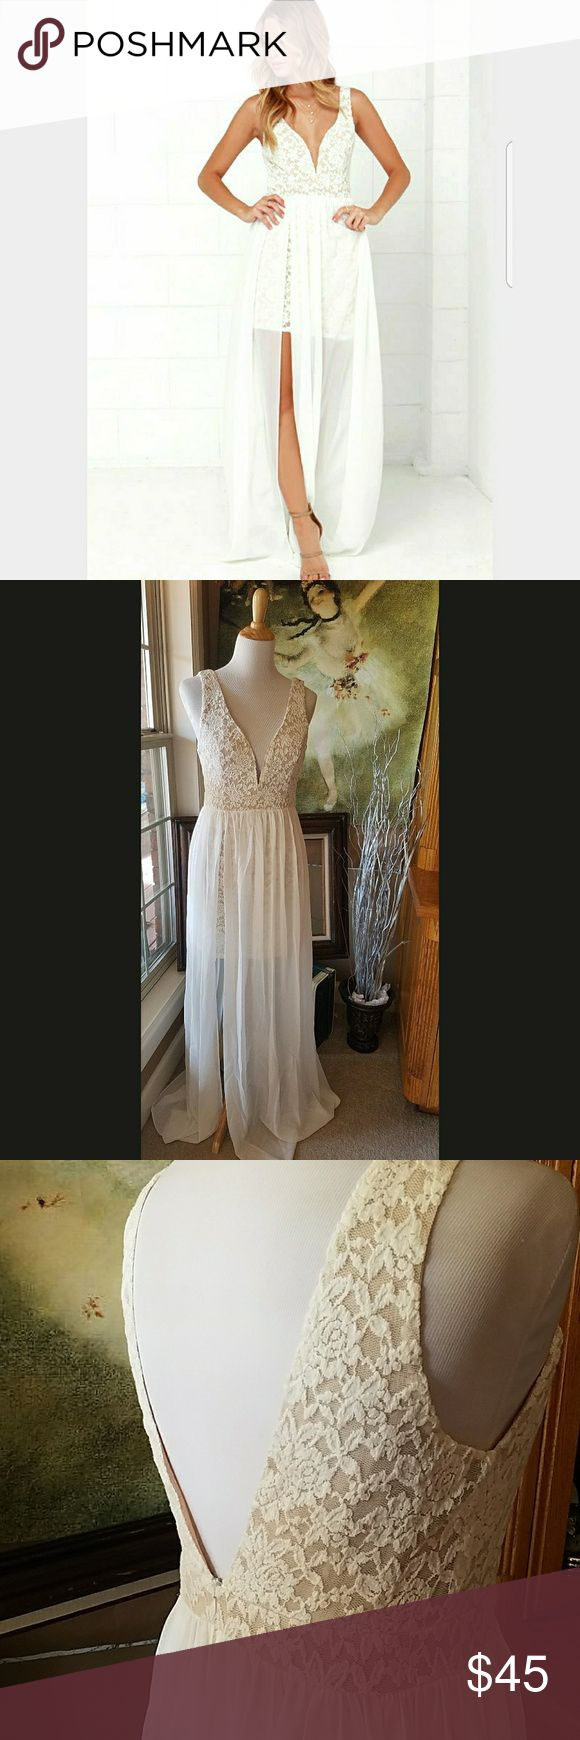 Major ☇! 1 HOUR! Ark&Co NWT OFF White Lace Maxi! Stretchy floral lace over beige. Plunging neckline with built in u bar for structure. SHEER chiffon skirt parts exposing a little leg. Natural waistline and stubby on anyone! Low V back create some drama. Ark & Co Dresses Maxi